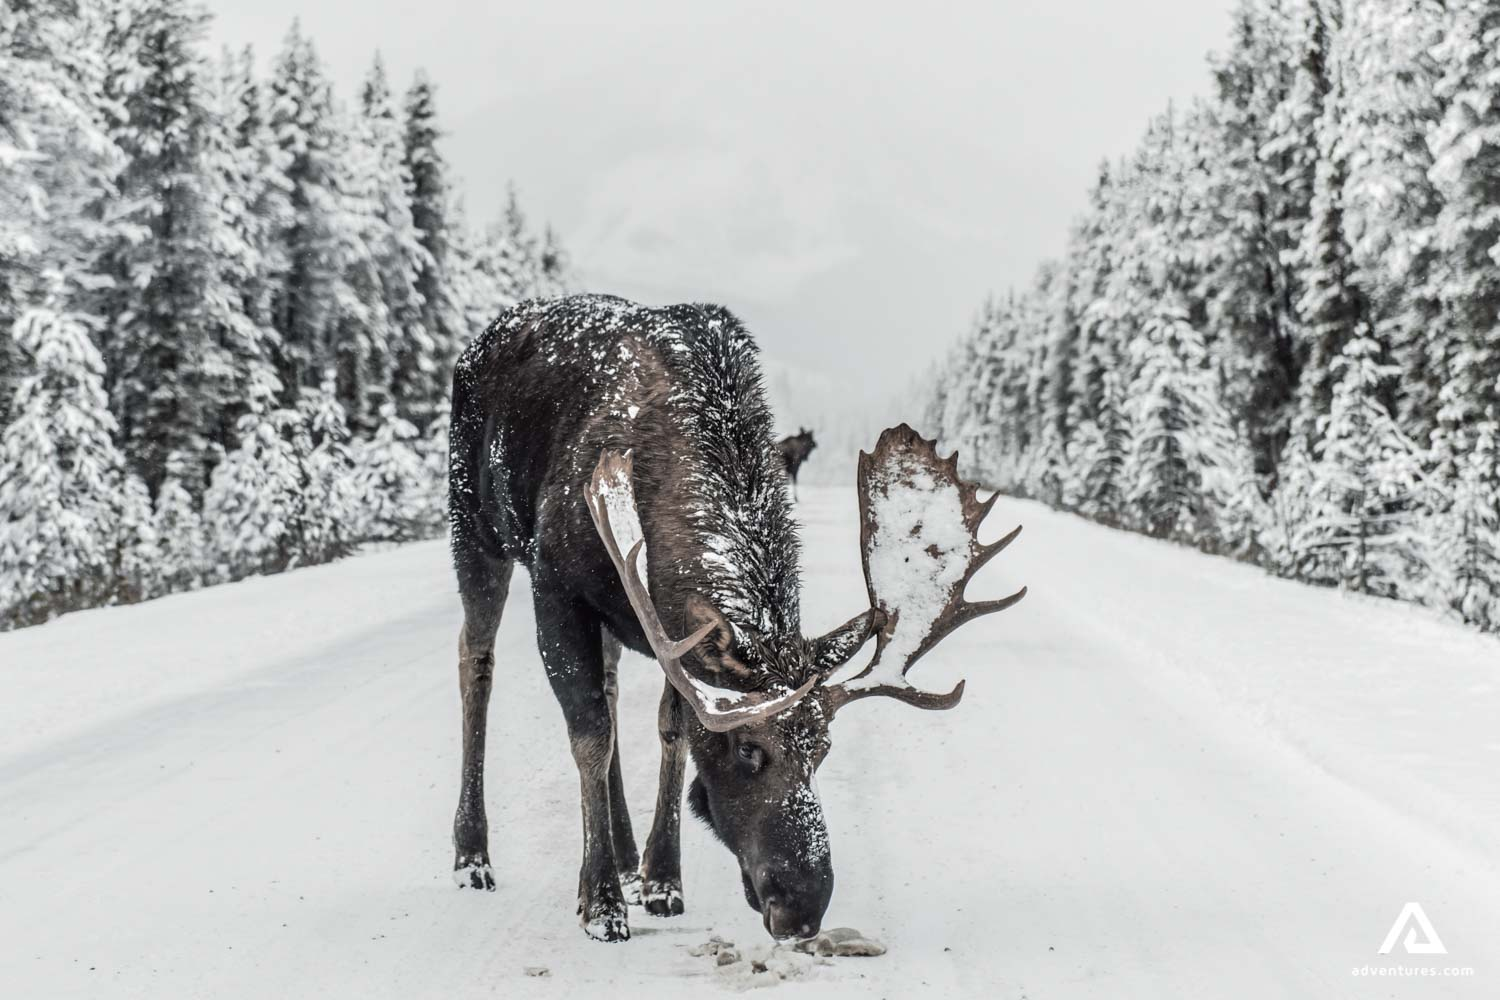 Moose On The Winter Road